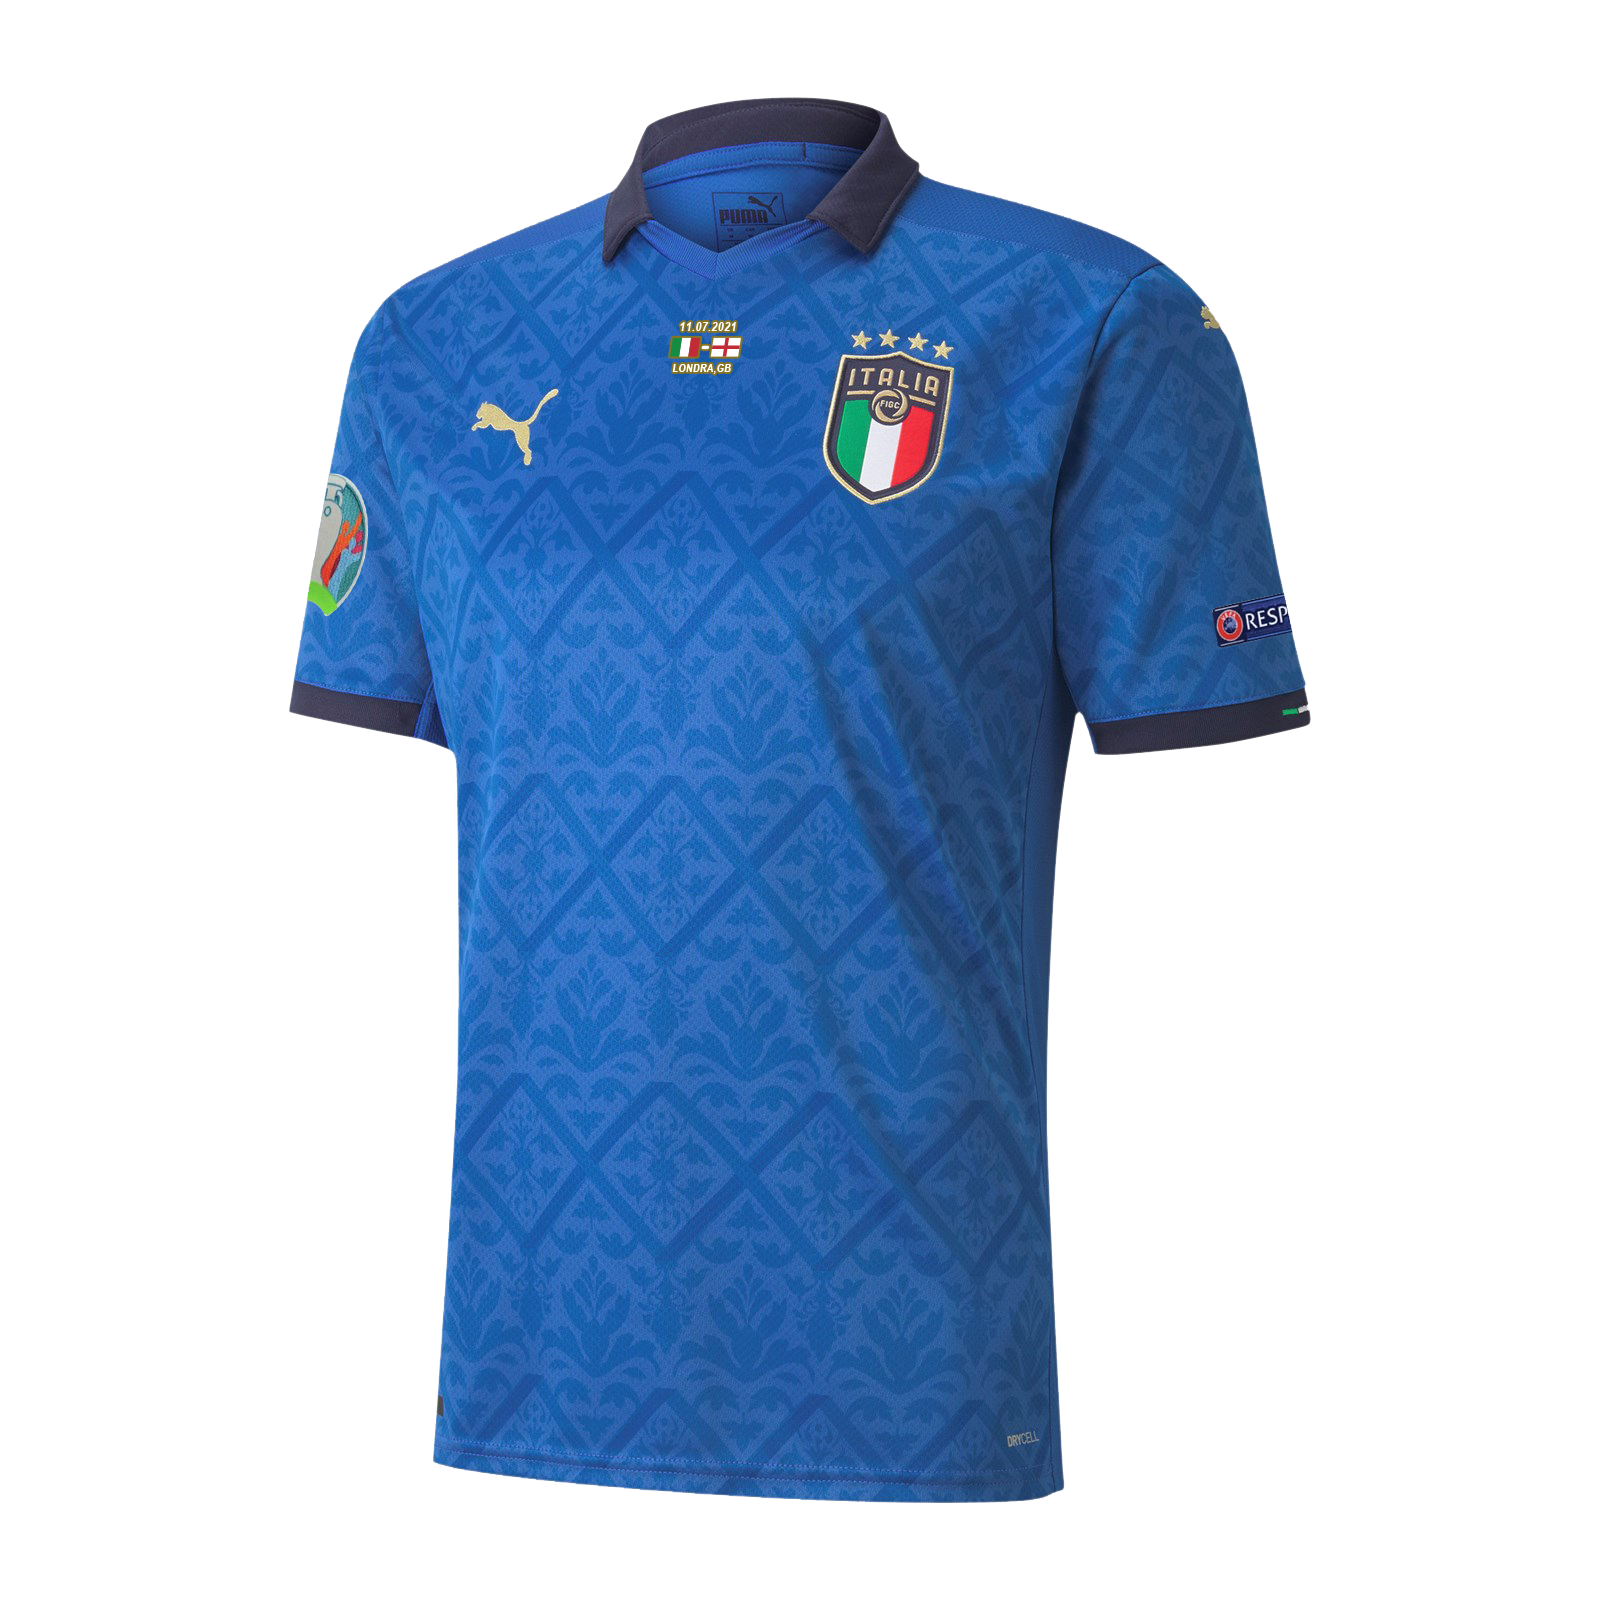 Replica Italy Home Jersey Euro 2020 Final Version By Puma